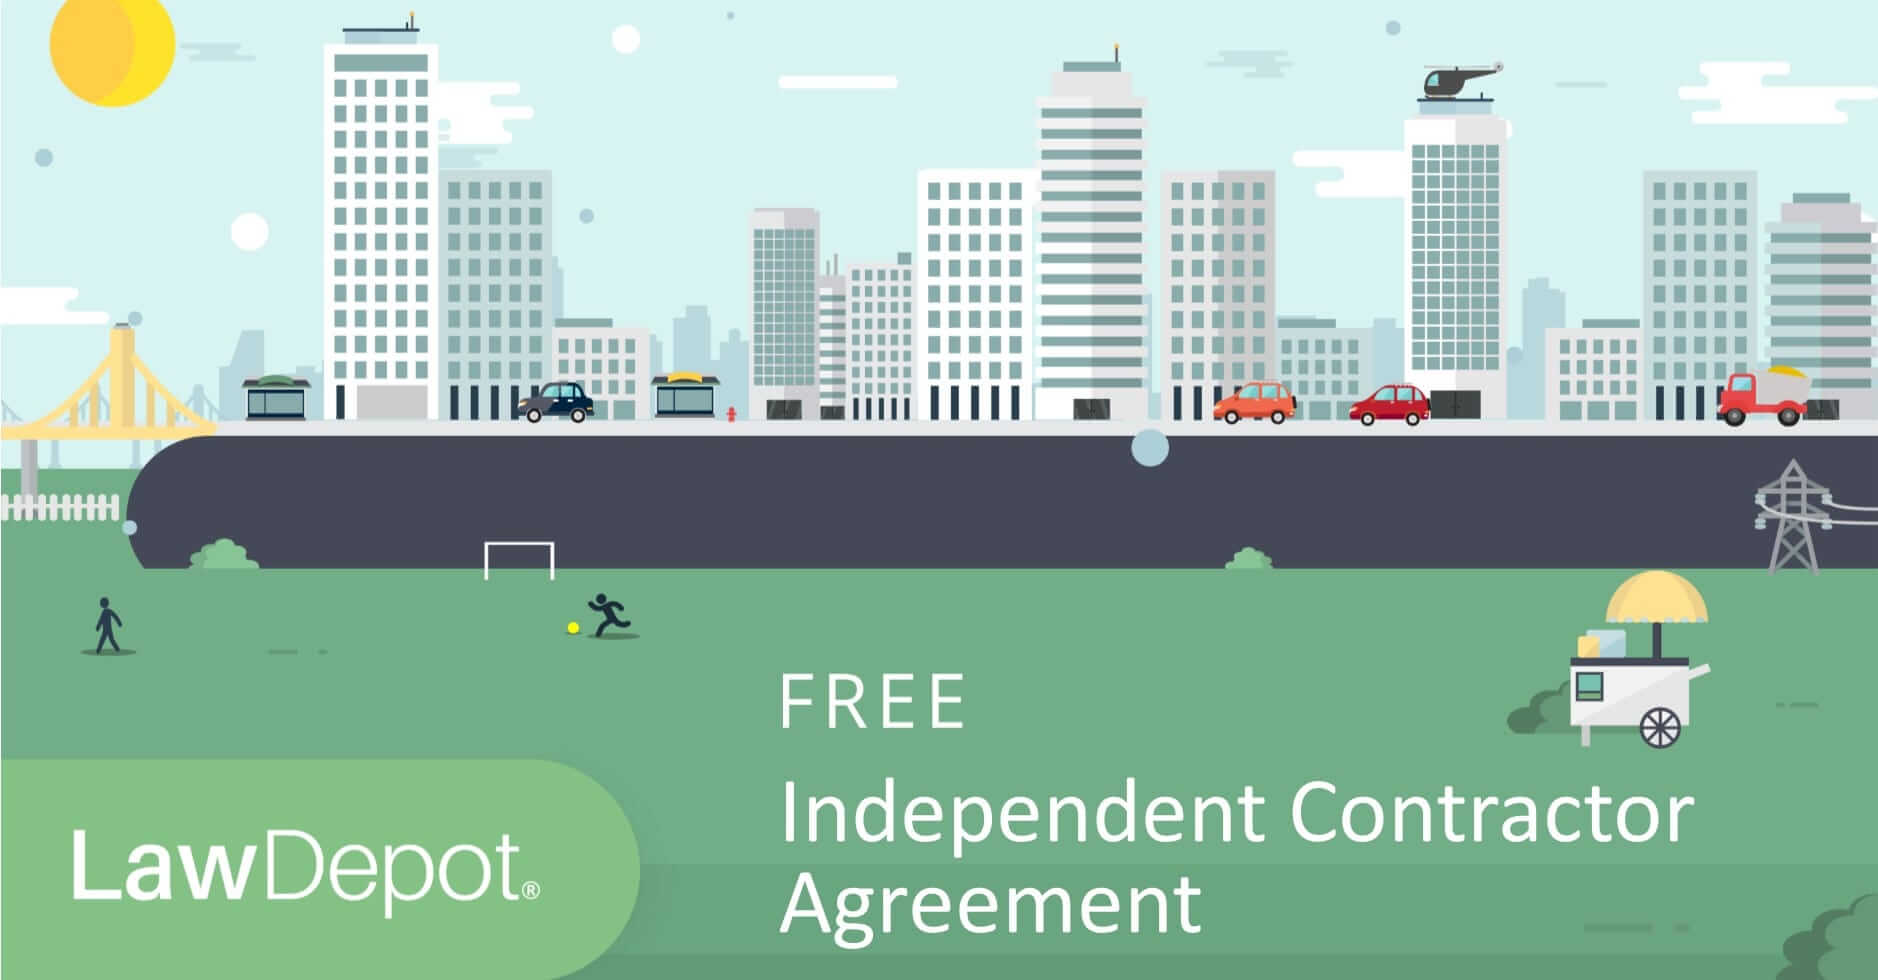 Free Independent Contractor Agreement - Create, Download, and Print